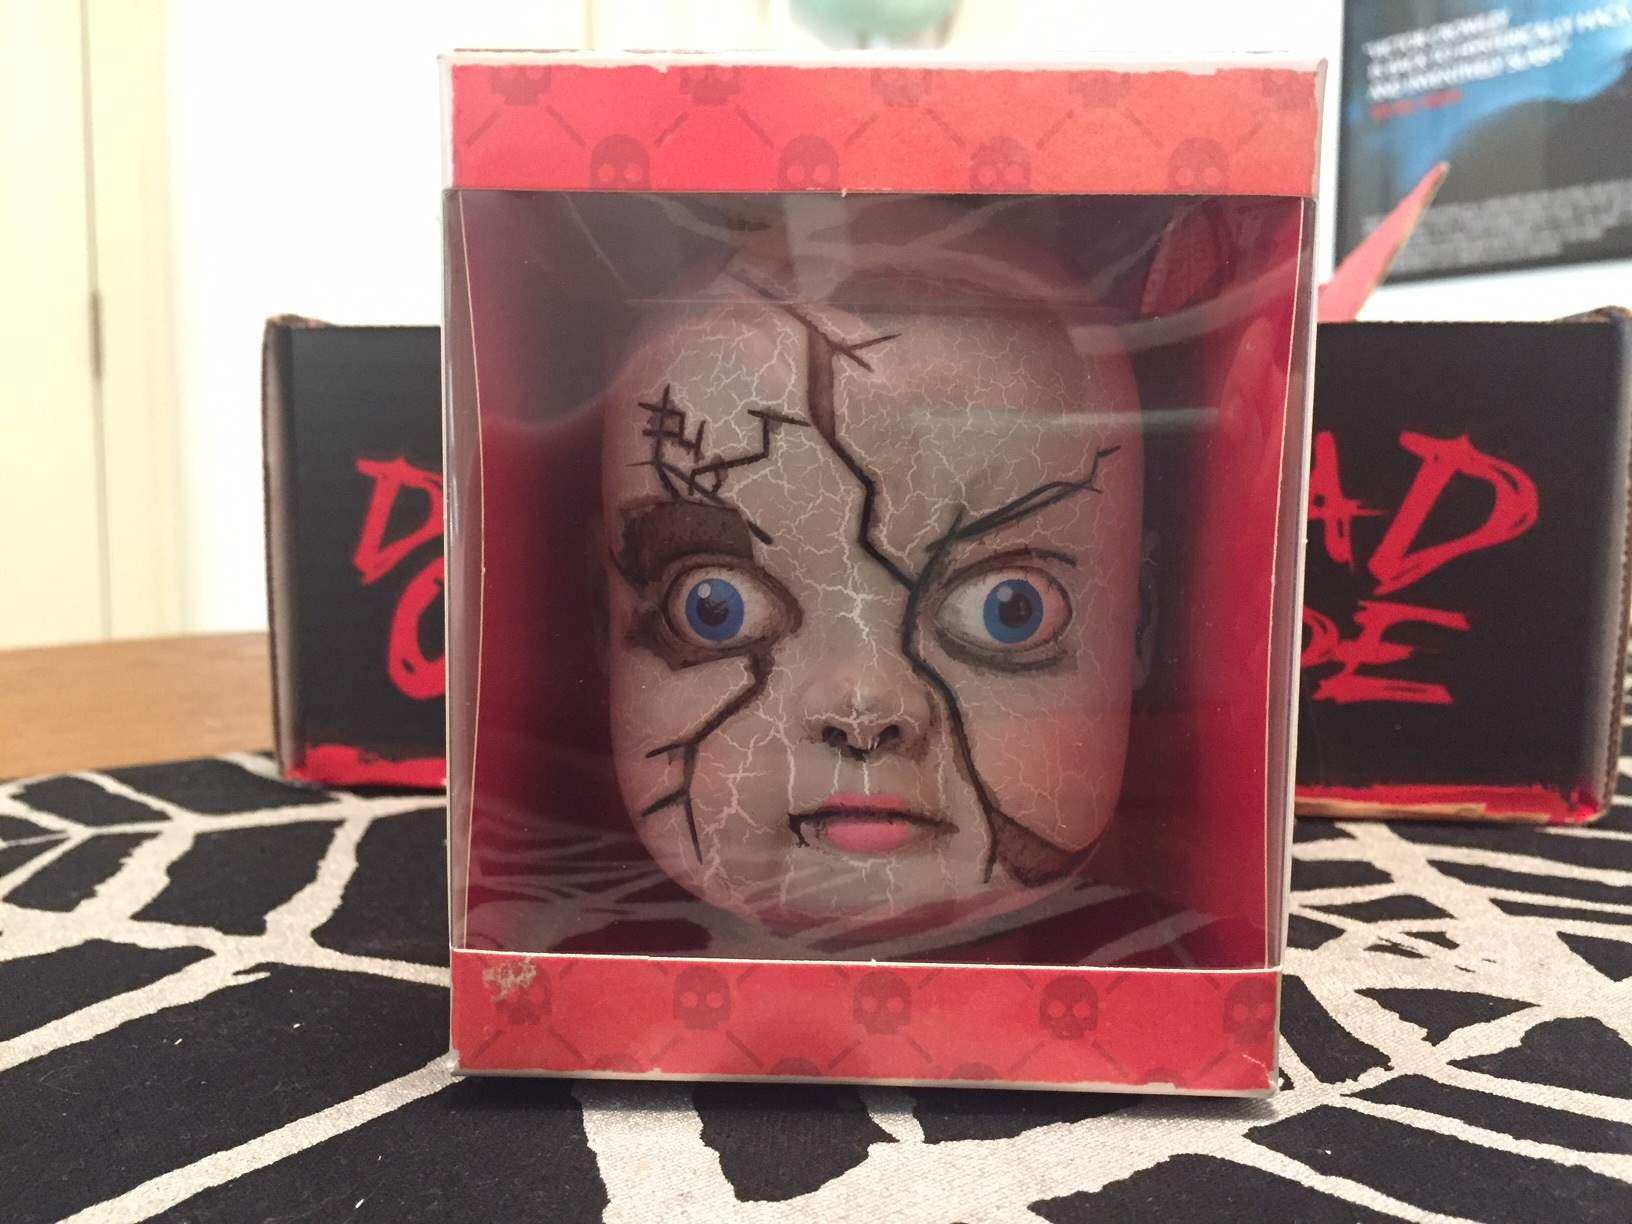 Creepy plastic doll head